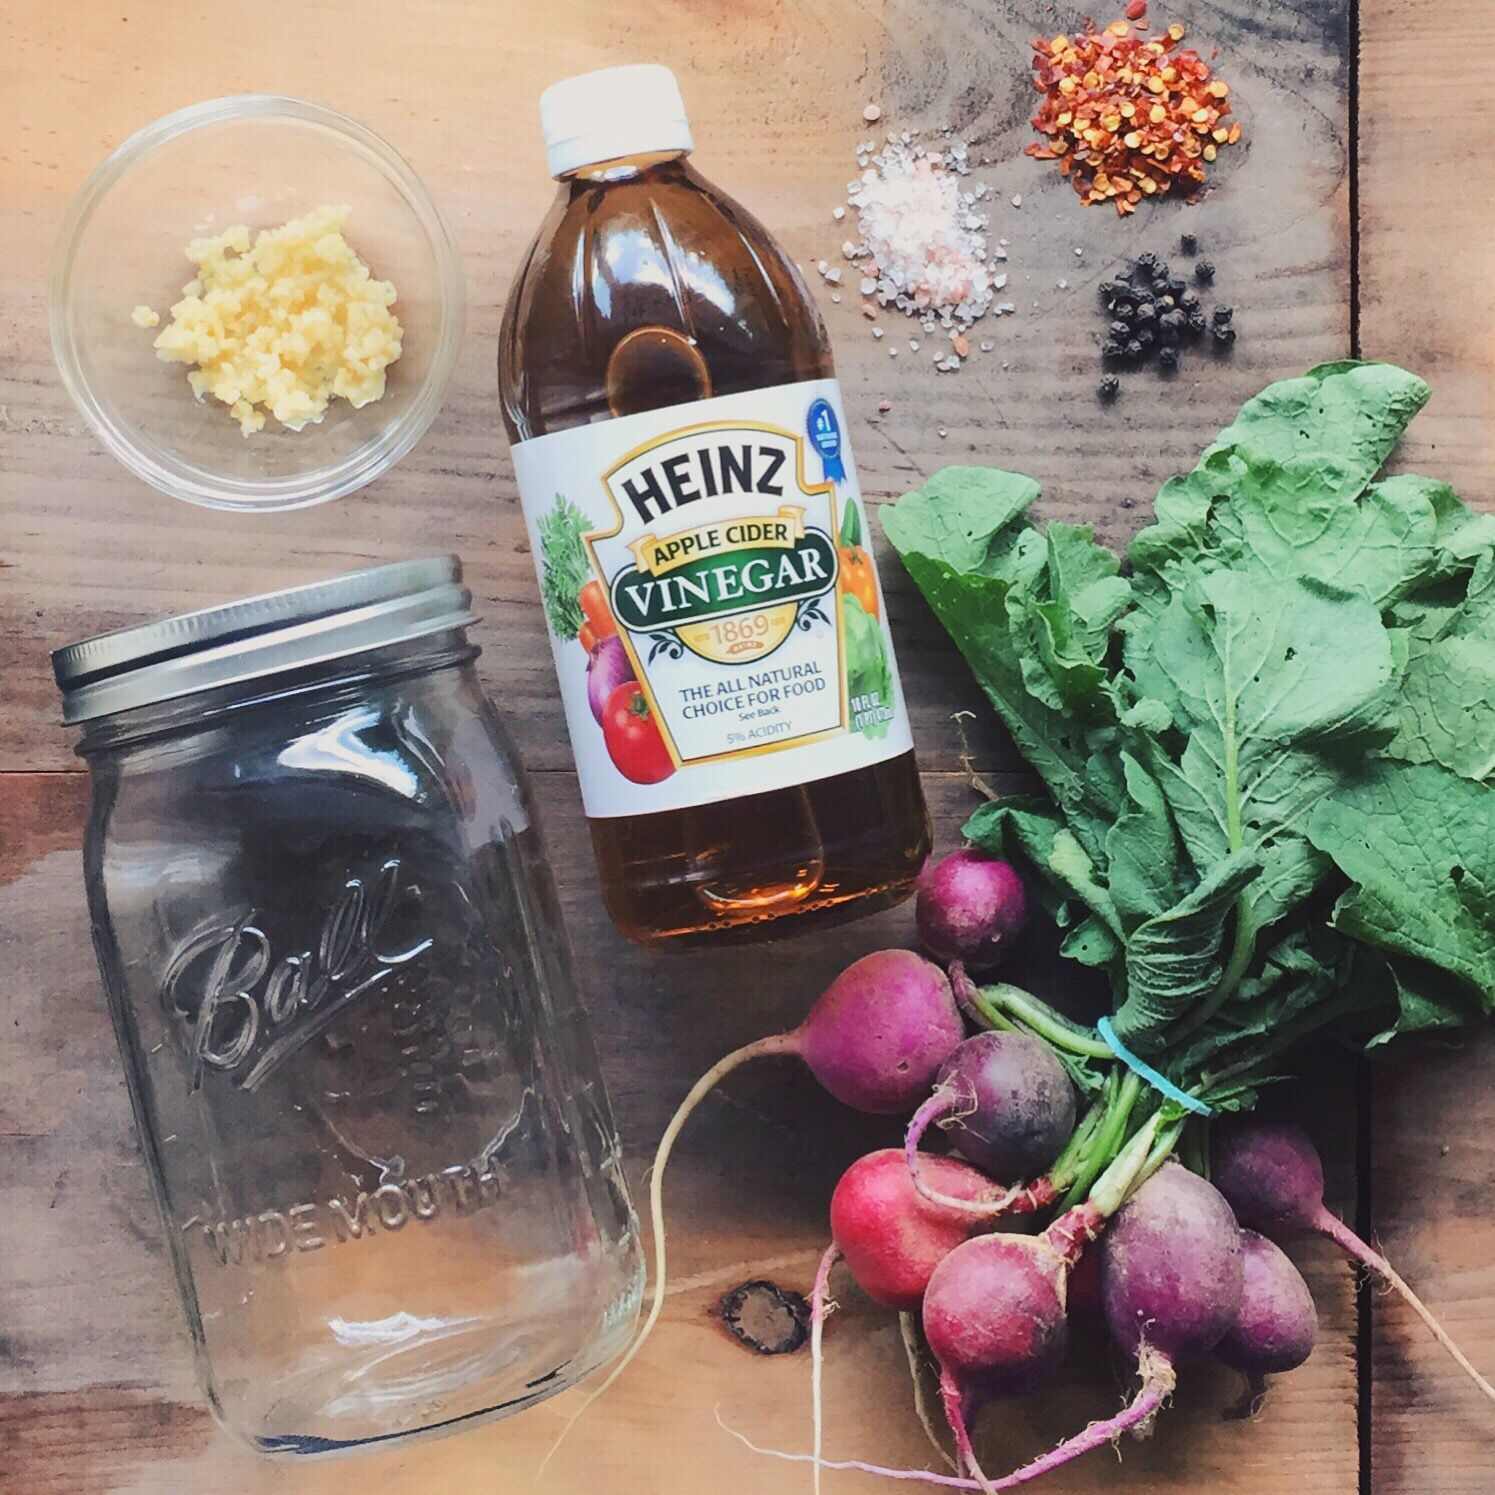 What Is Vinegar and How Is It Made?